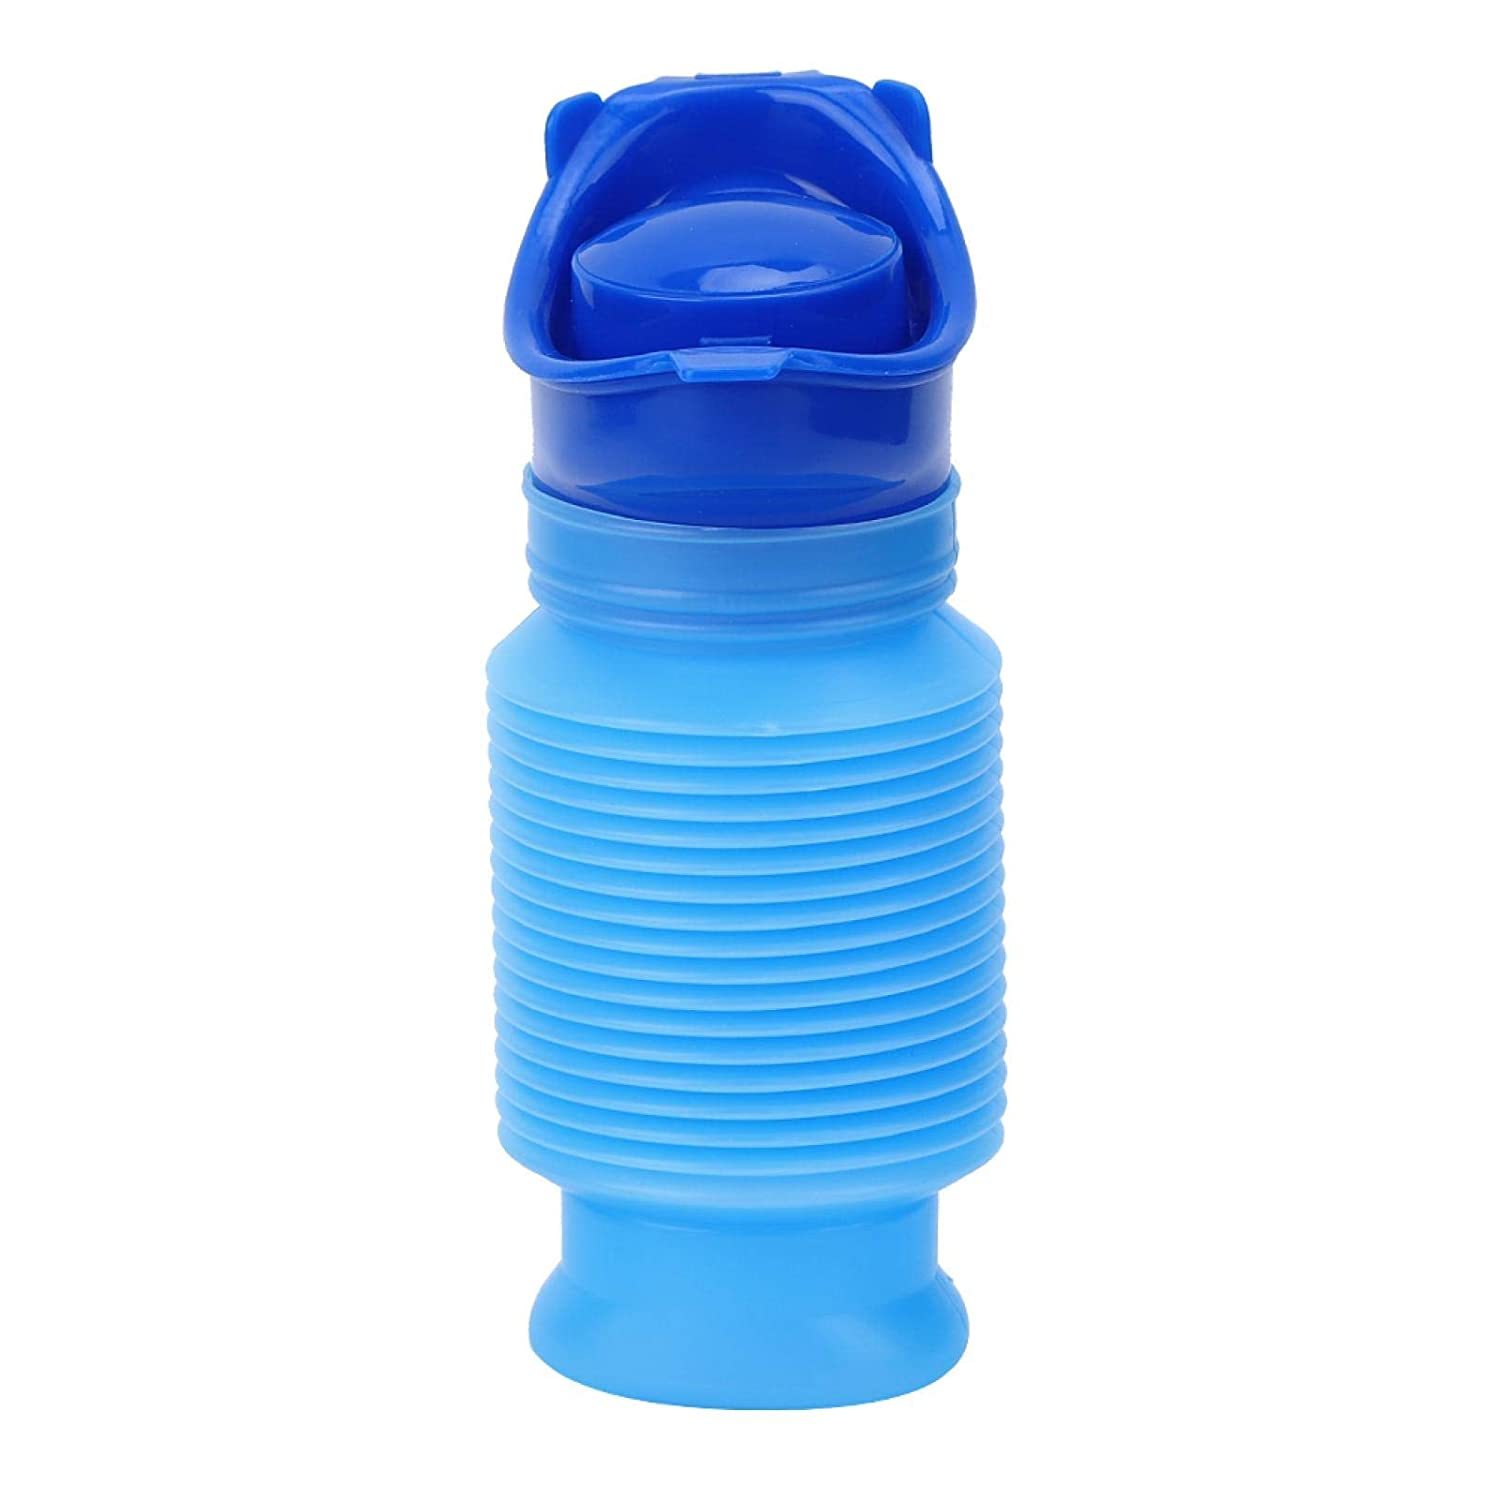 Outdoor Urine Bottle Funnel for Kid Baby Pee Accessories Children Urinal Adults